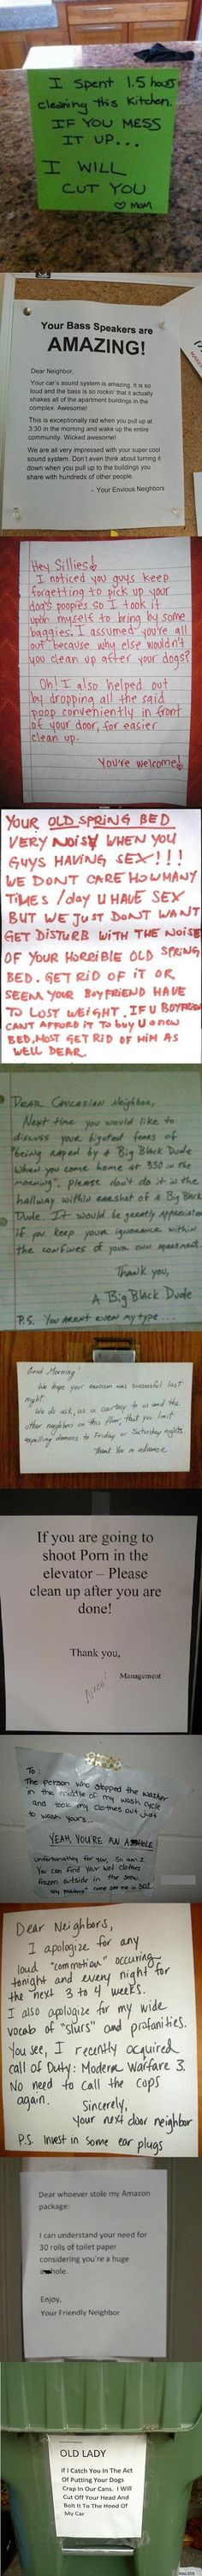 Dear Neighbour - These are all very well said :D